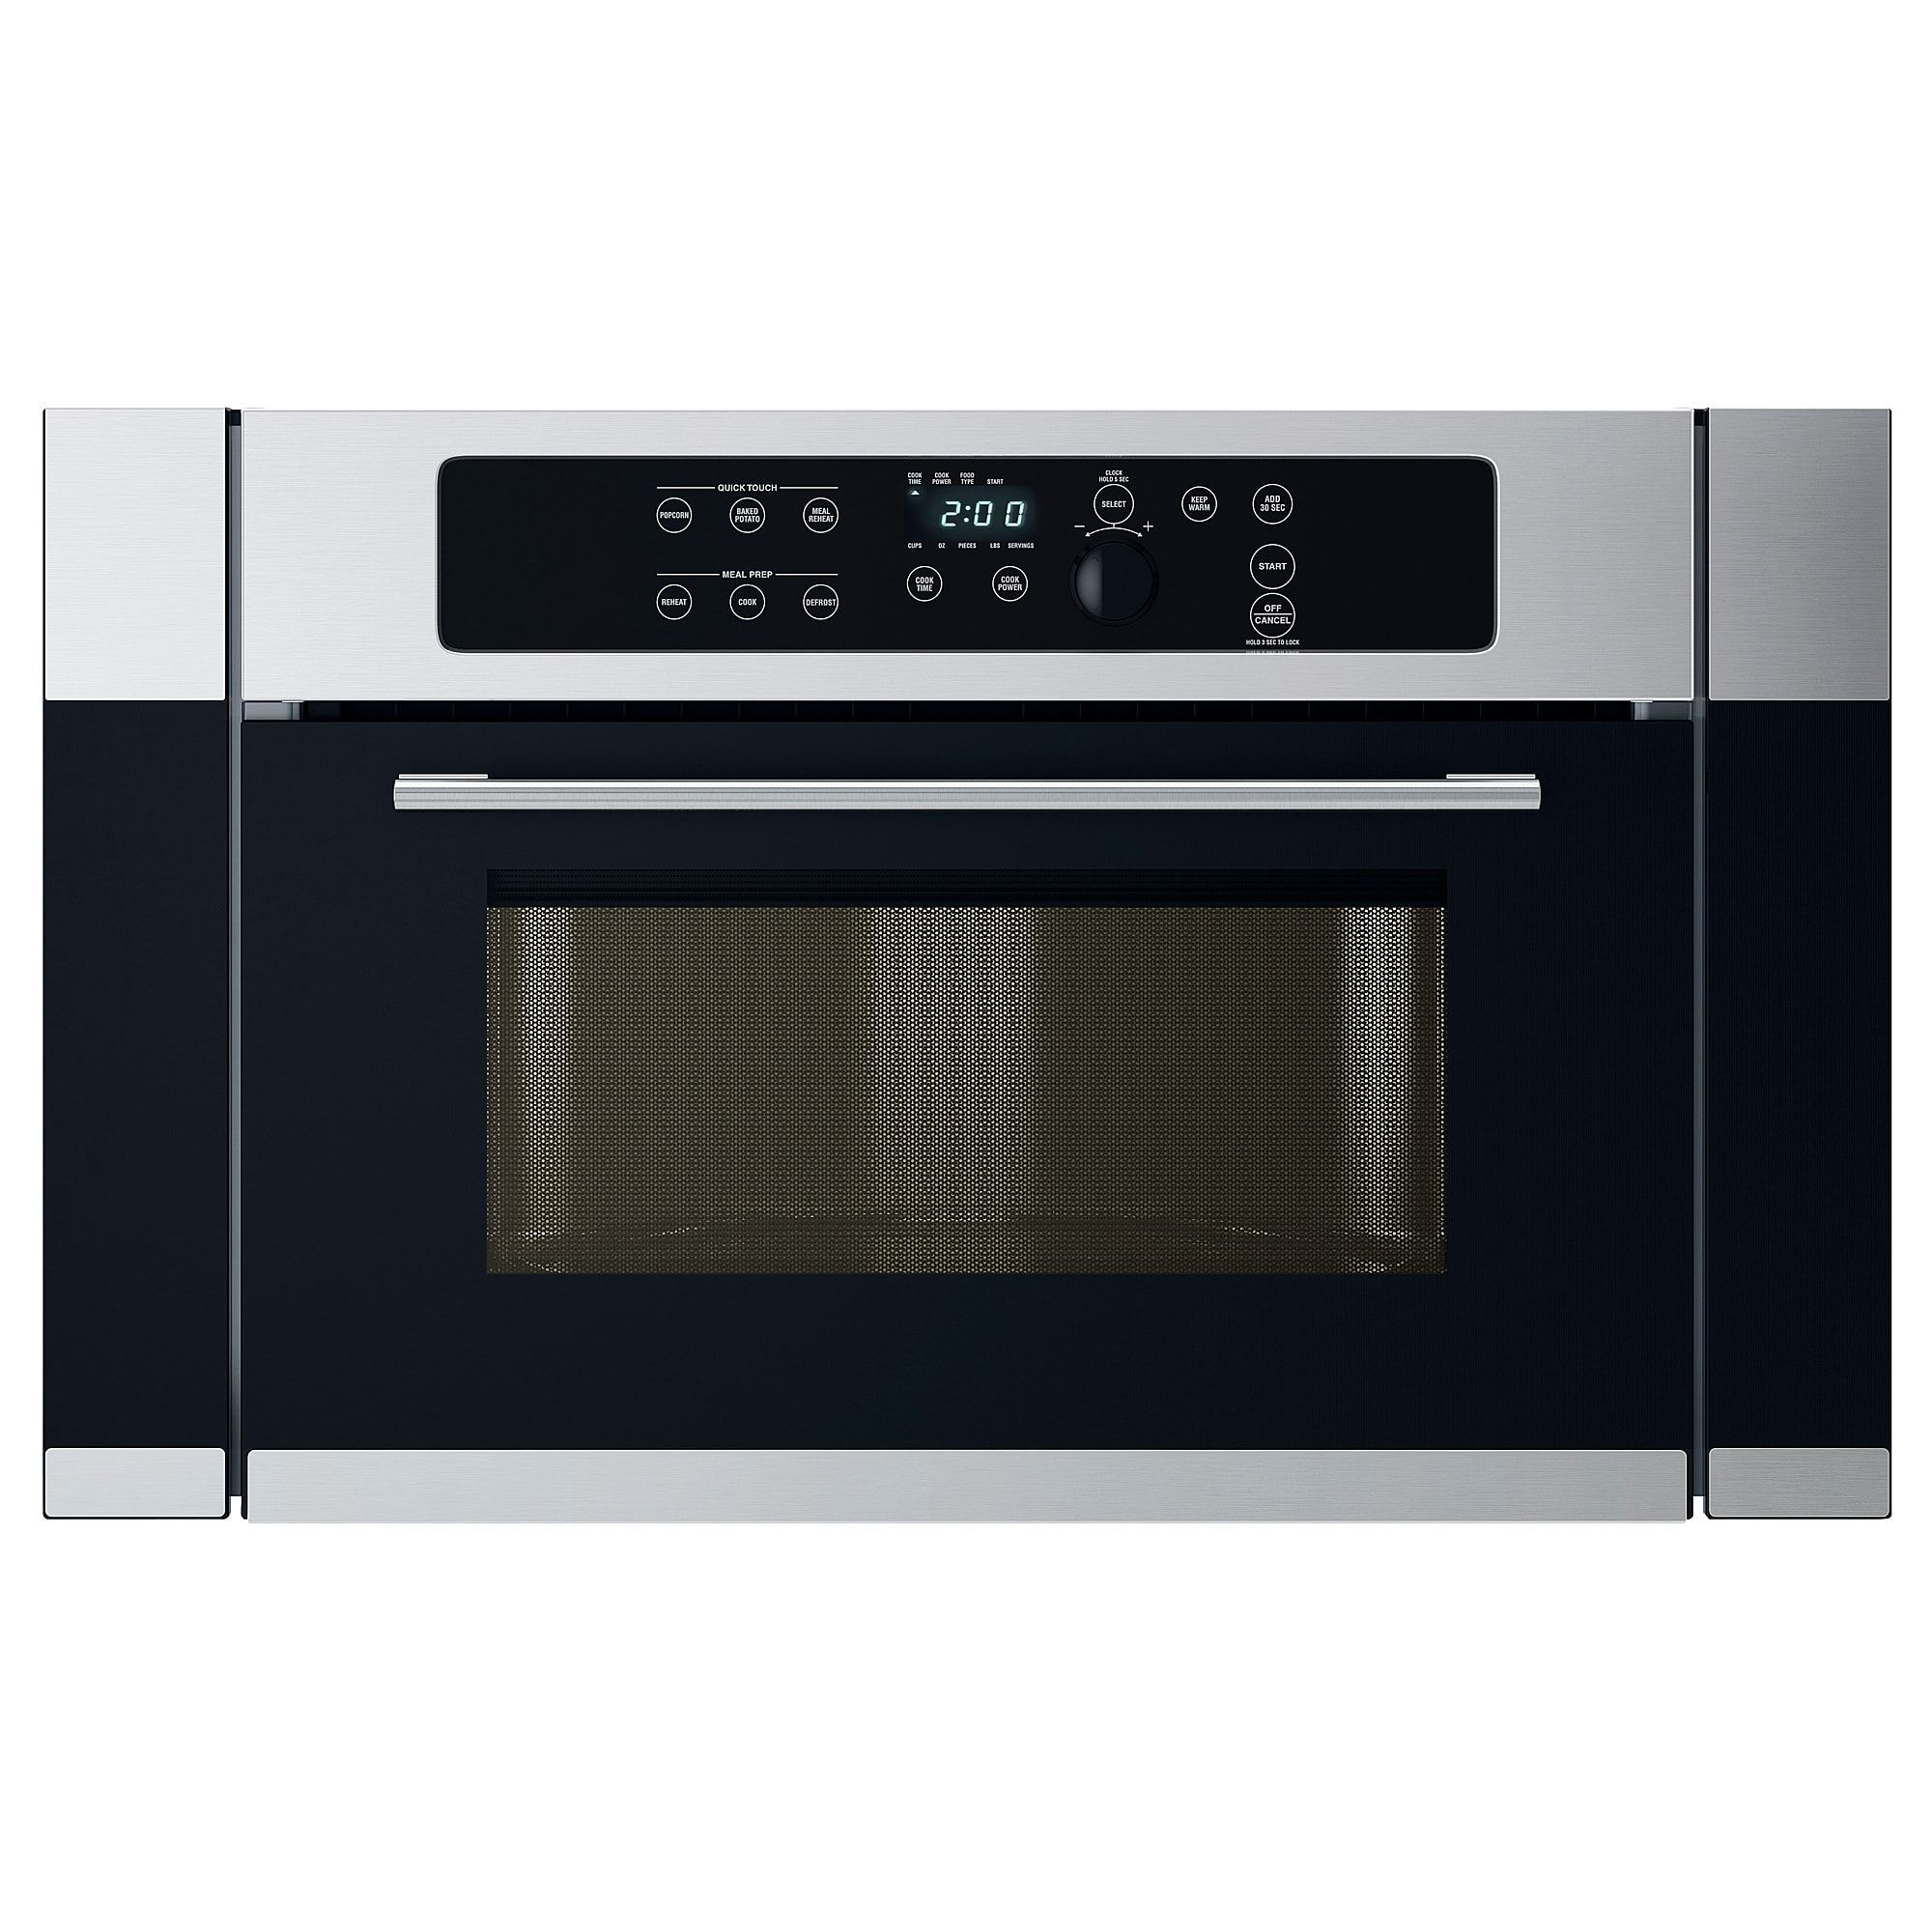 Nutid Microwave Oven Stainless Steel Stainless Steel